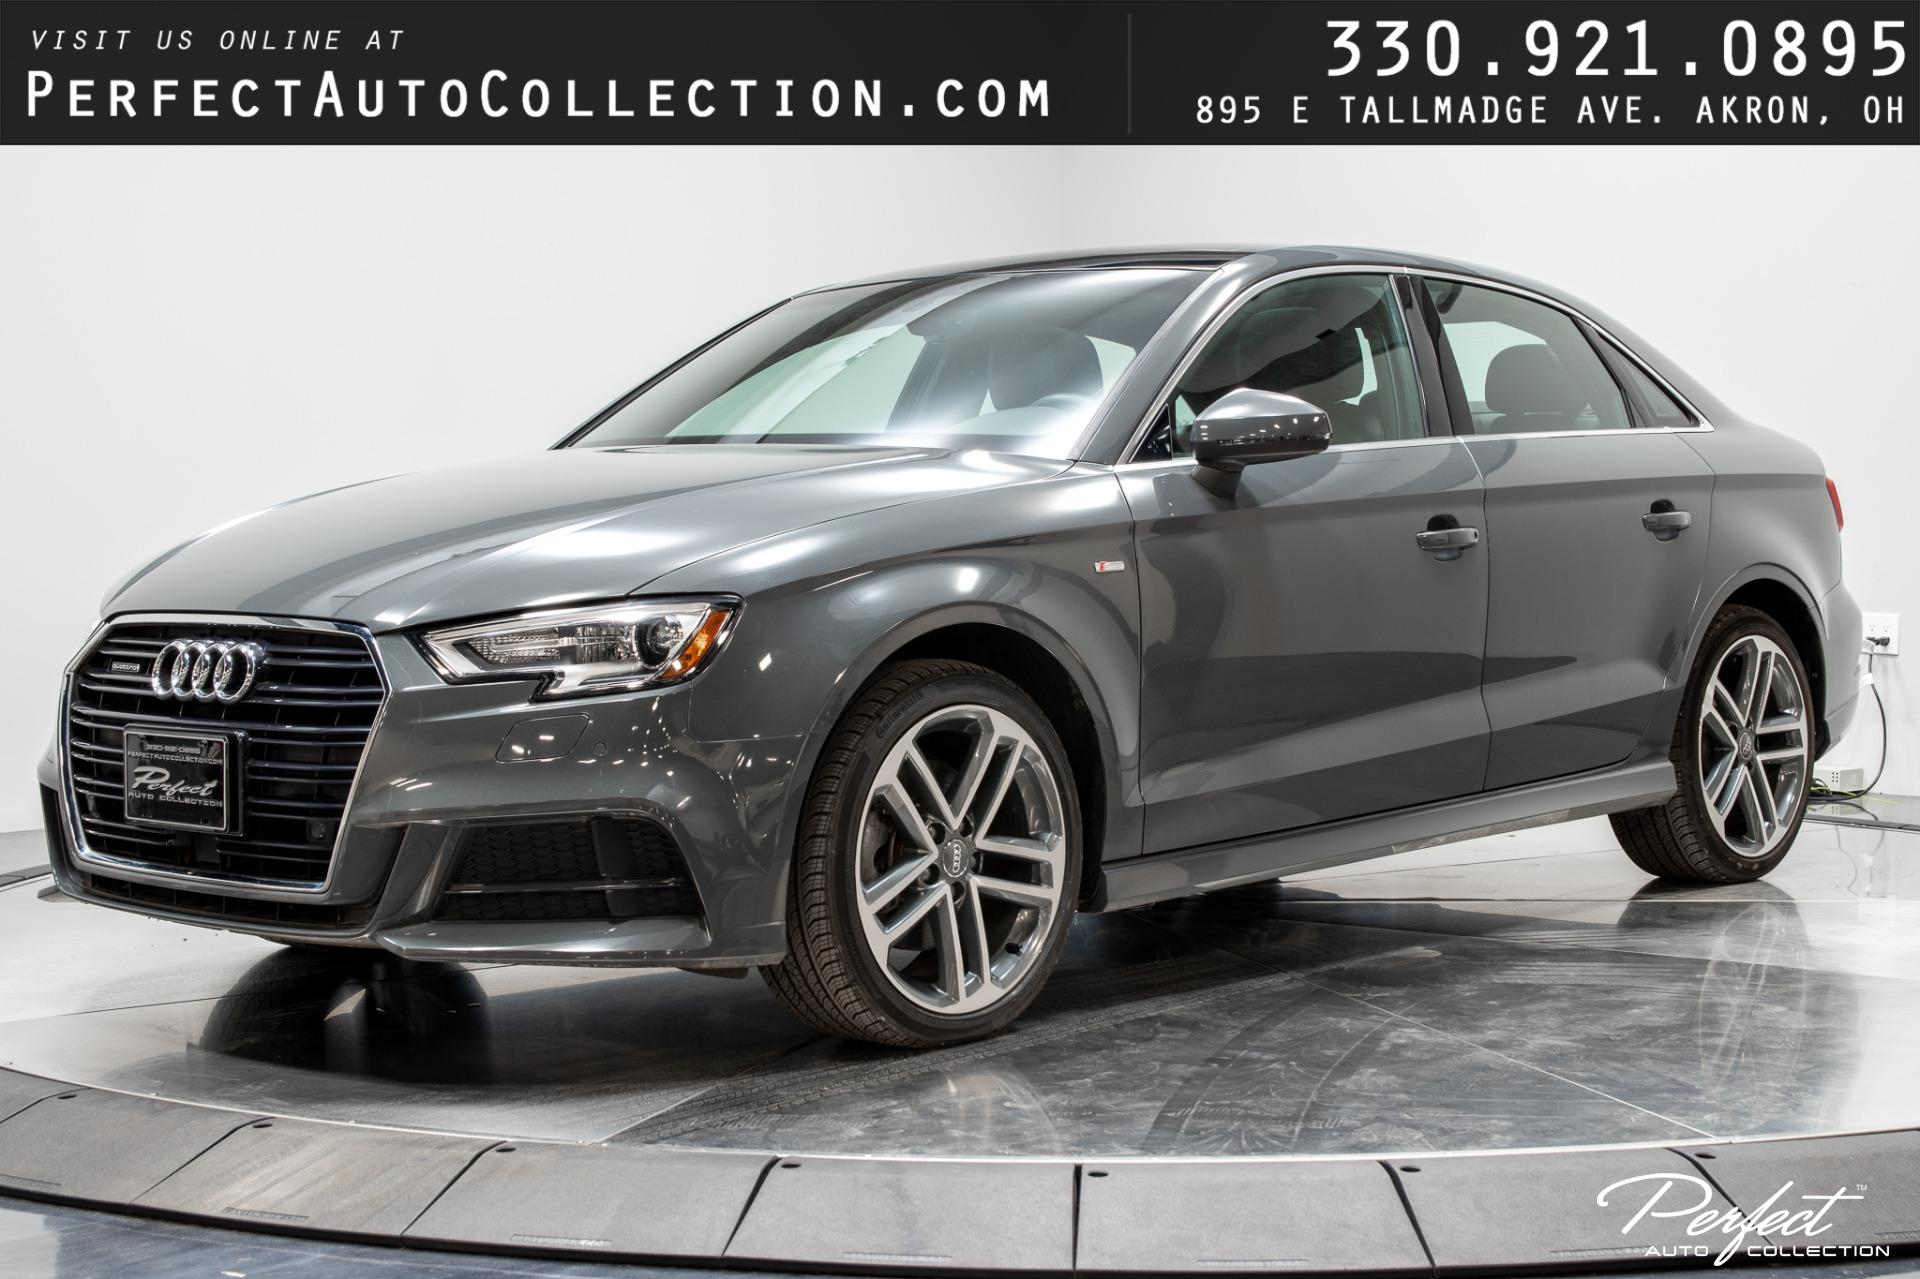 Used 2017 Audi A3 2.0T quattro Premium Plus for sale $24,593 at Perfect Auto Collection in Akron OH 44310 1